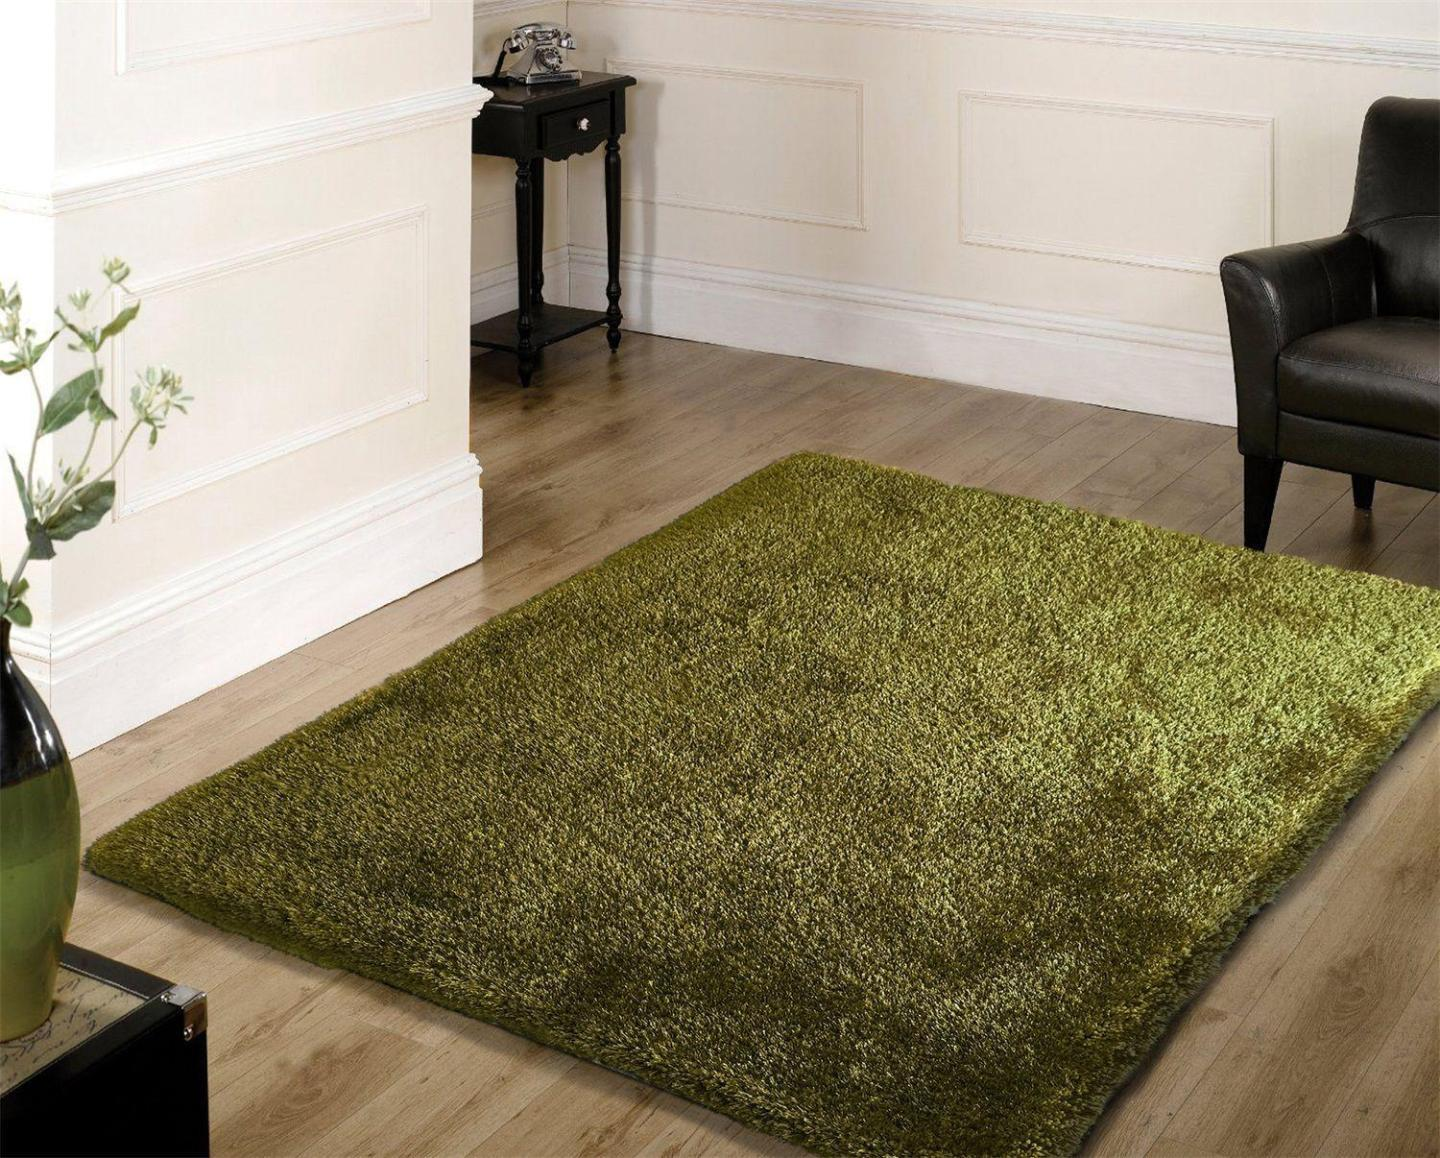 Image of: Area Rug Sizes For Living Room